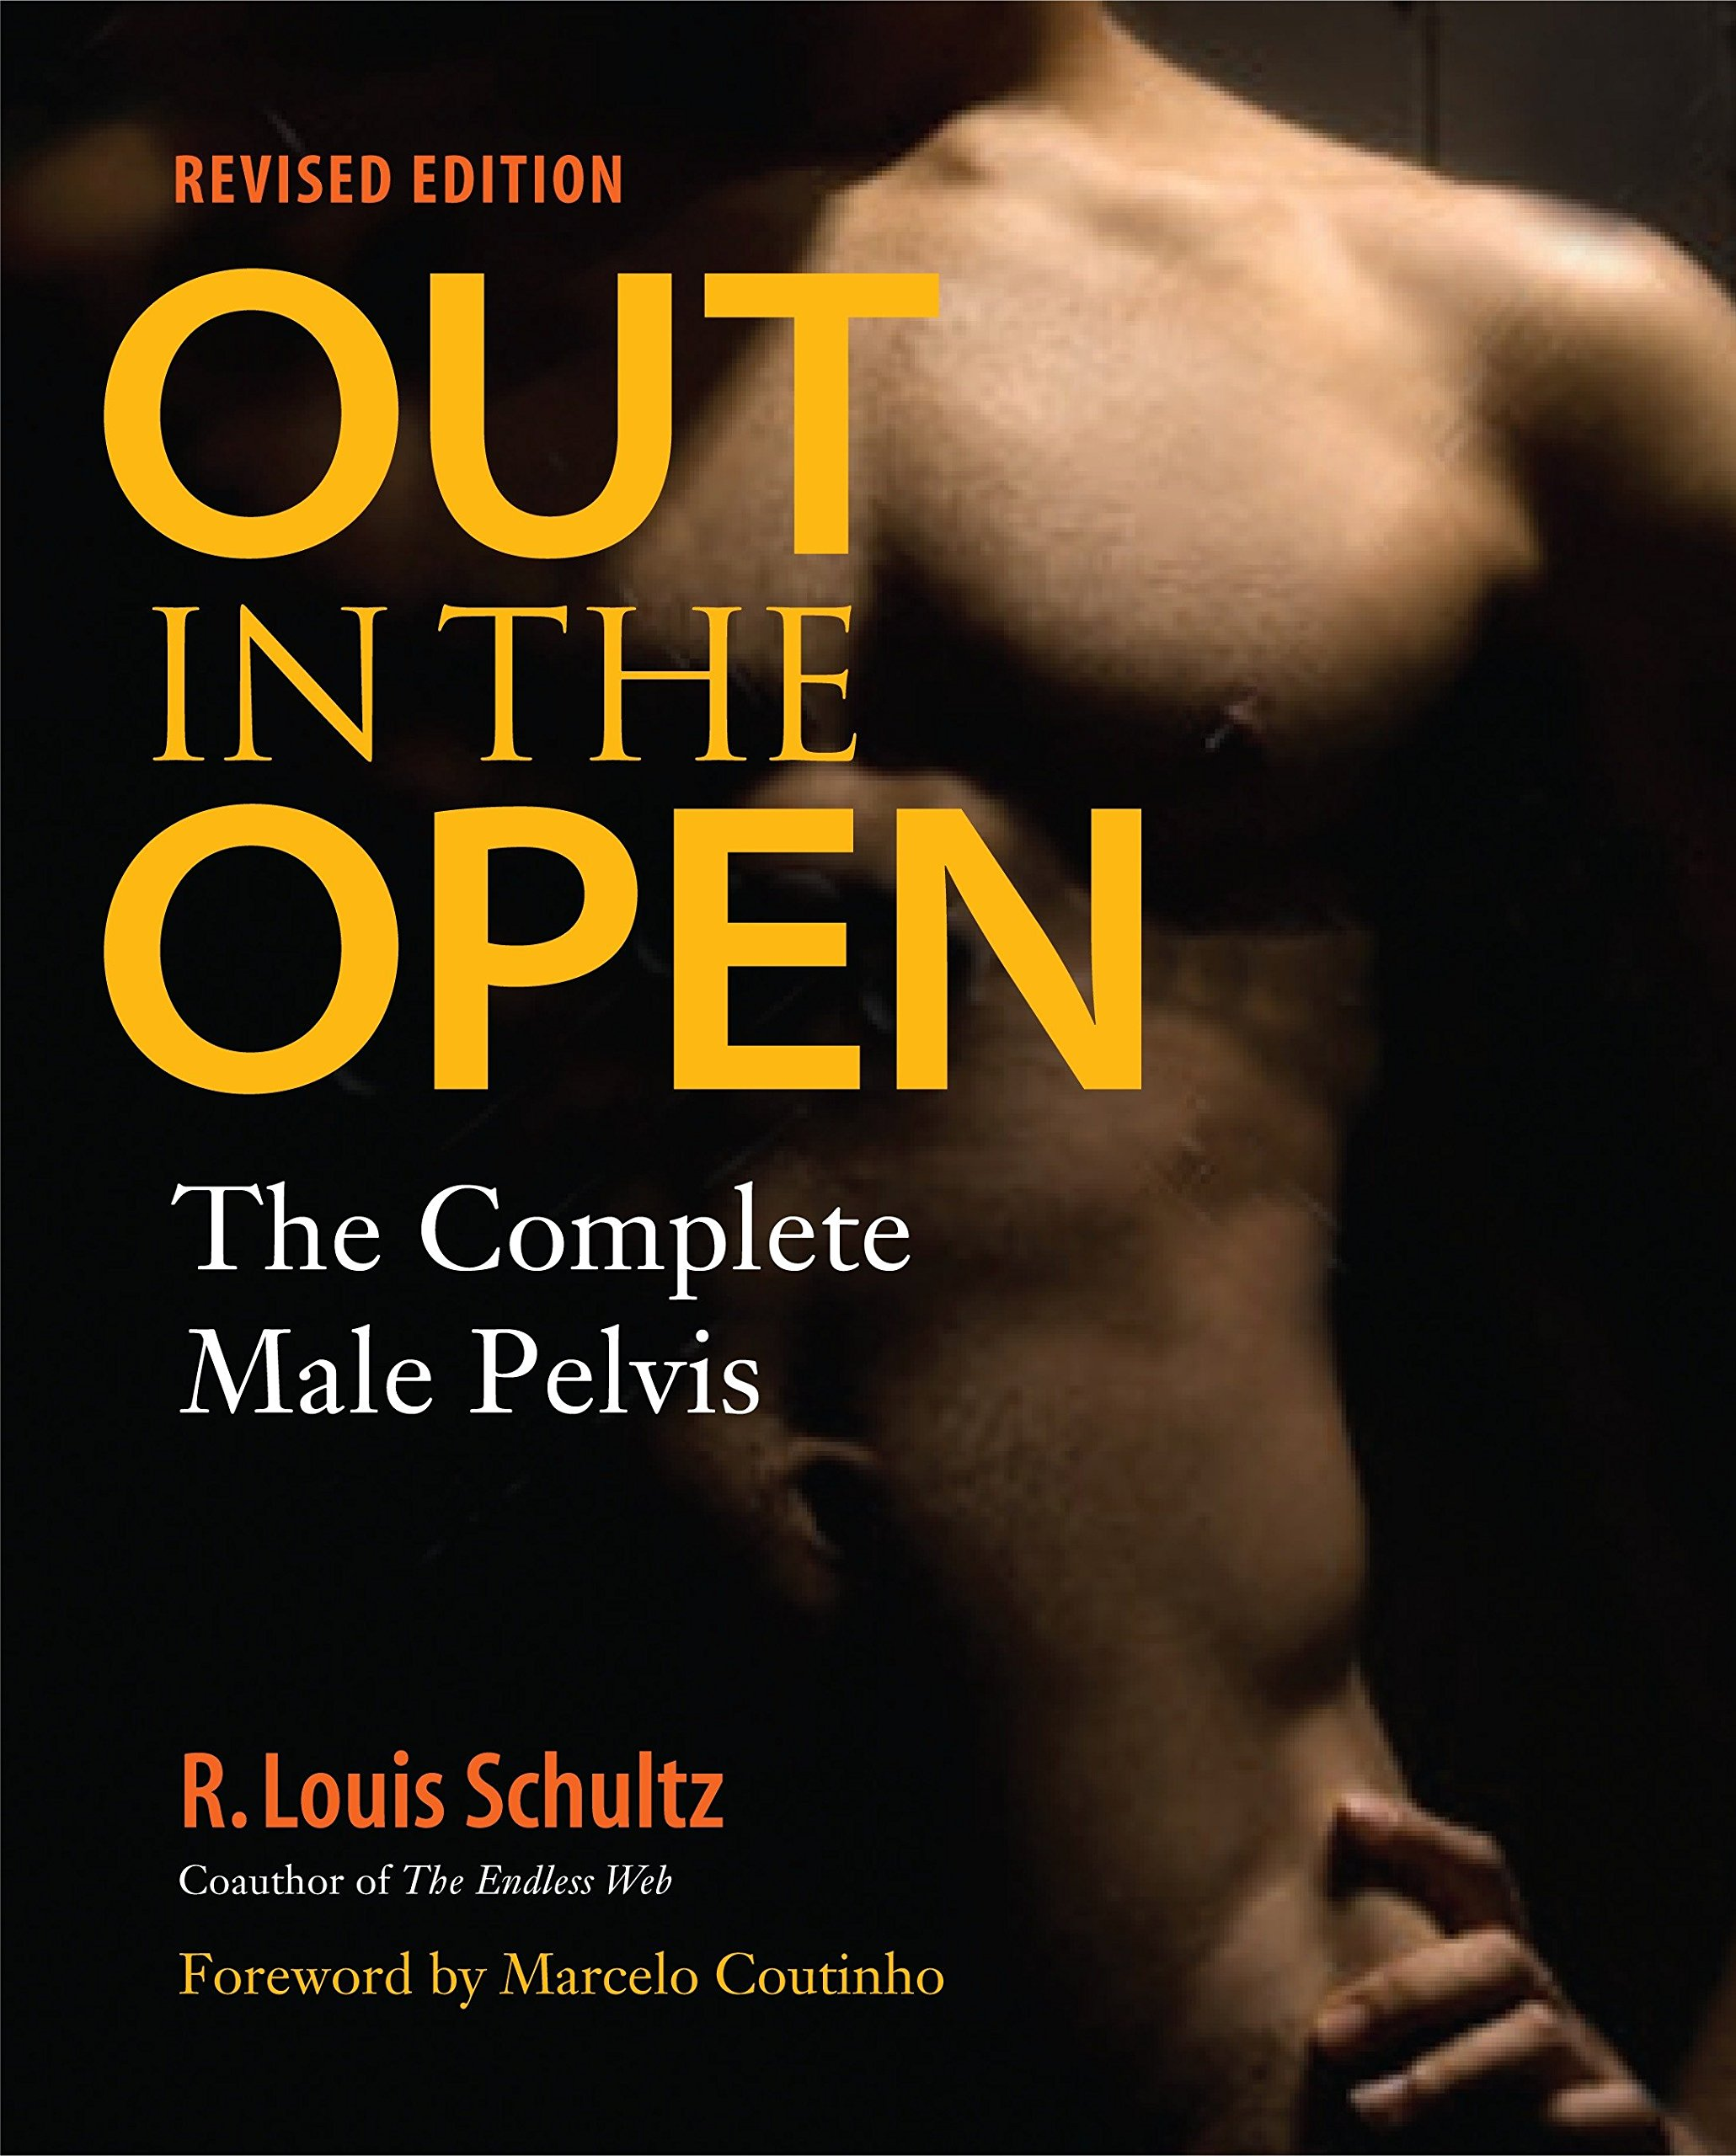 Out in the Open, Revised Edition: The Complete Male Pelvis Paperback – June 26, 2012 R. Louis Schultz Ph.D. Marcelo Coutinho North Atlantic Books 1583944362